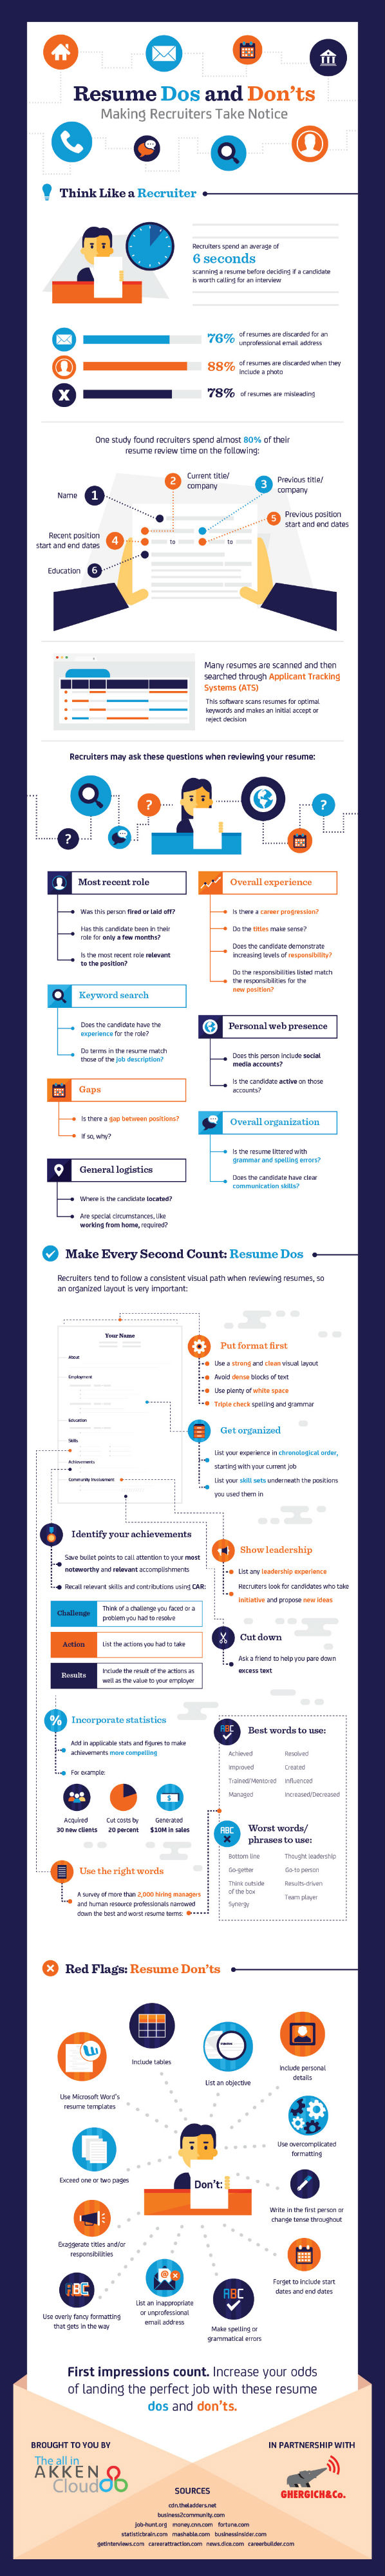 Resume Dos and Don'ts [Infographic]